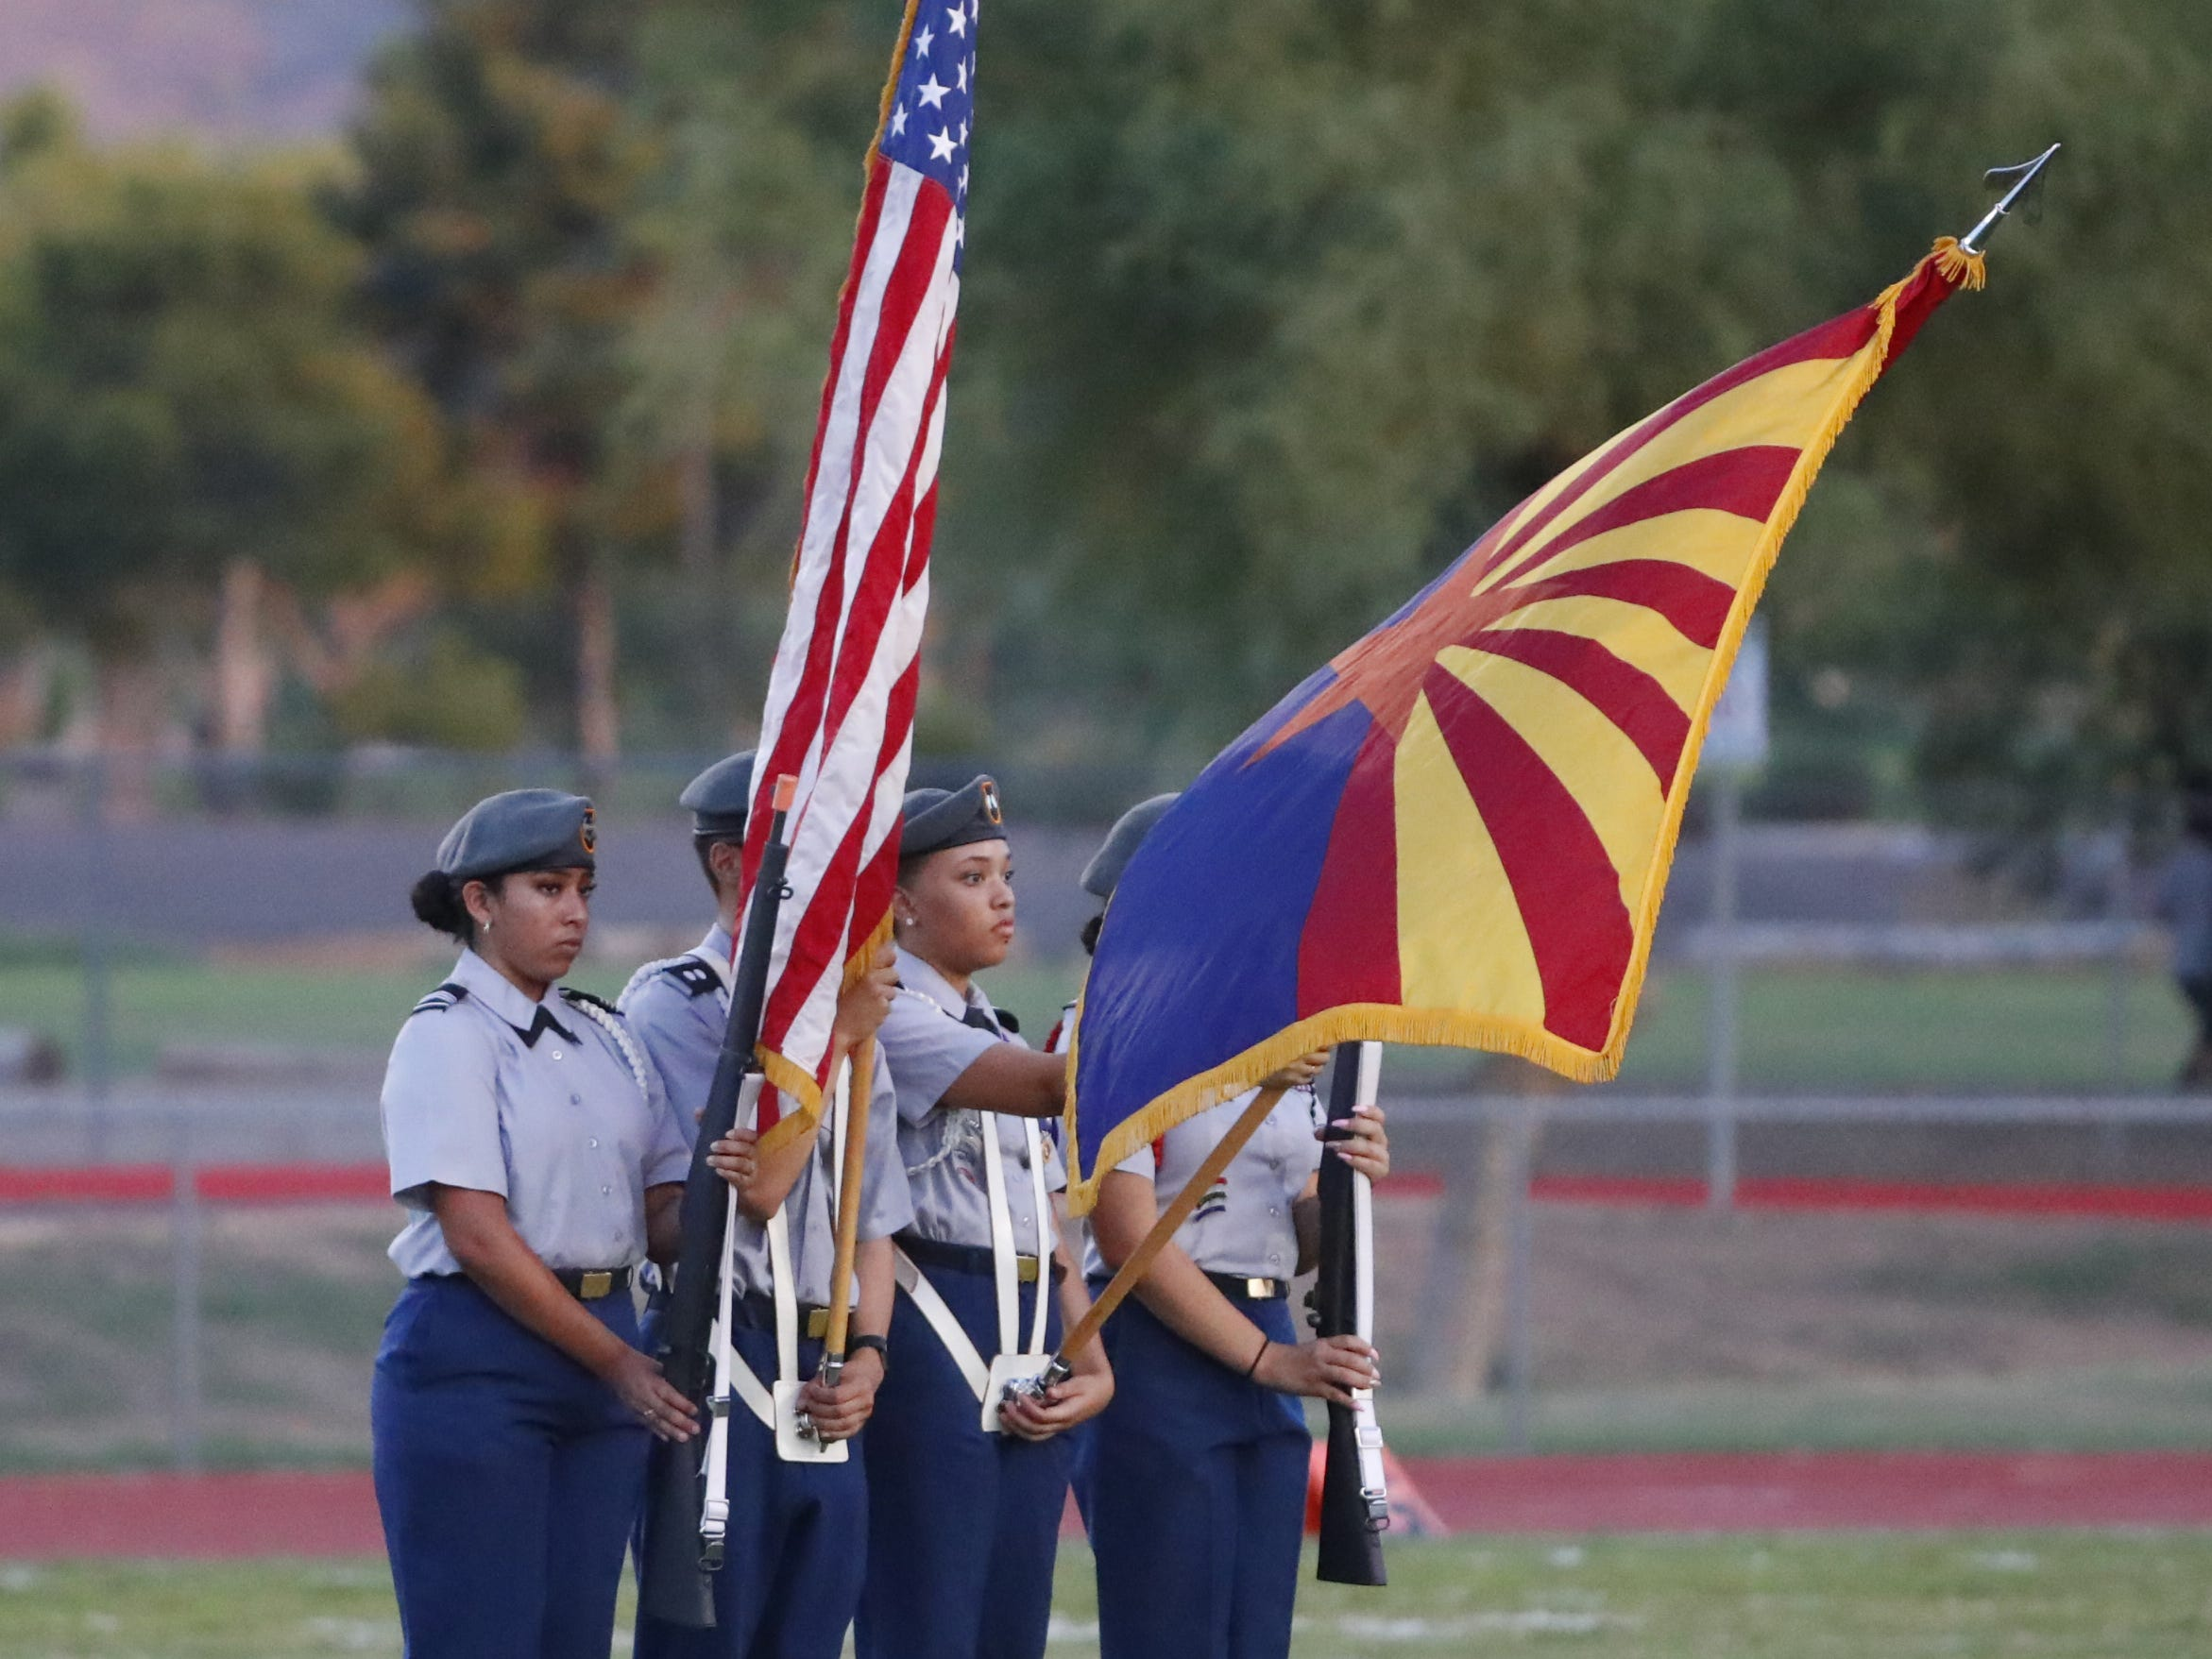 Cesar Chavez's color guard holds the flags during a game at Cesar Chavez High School in Phoenix, Ariz. on Aug. 23, 2018.